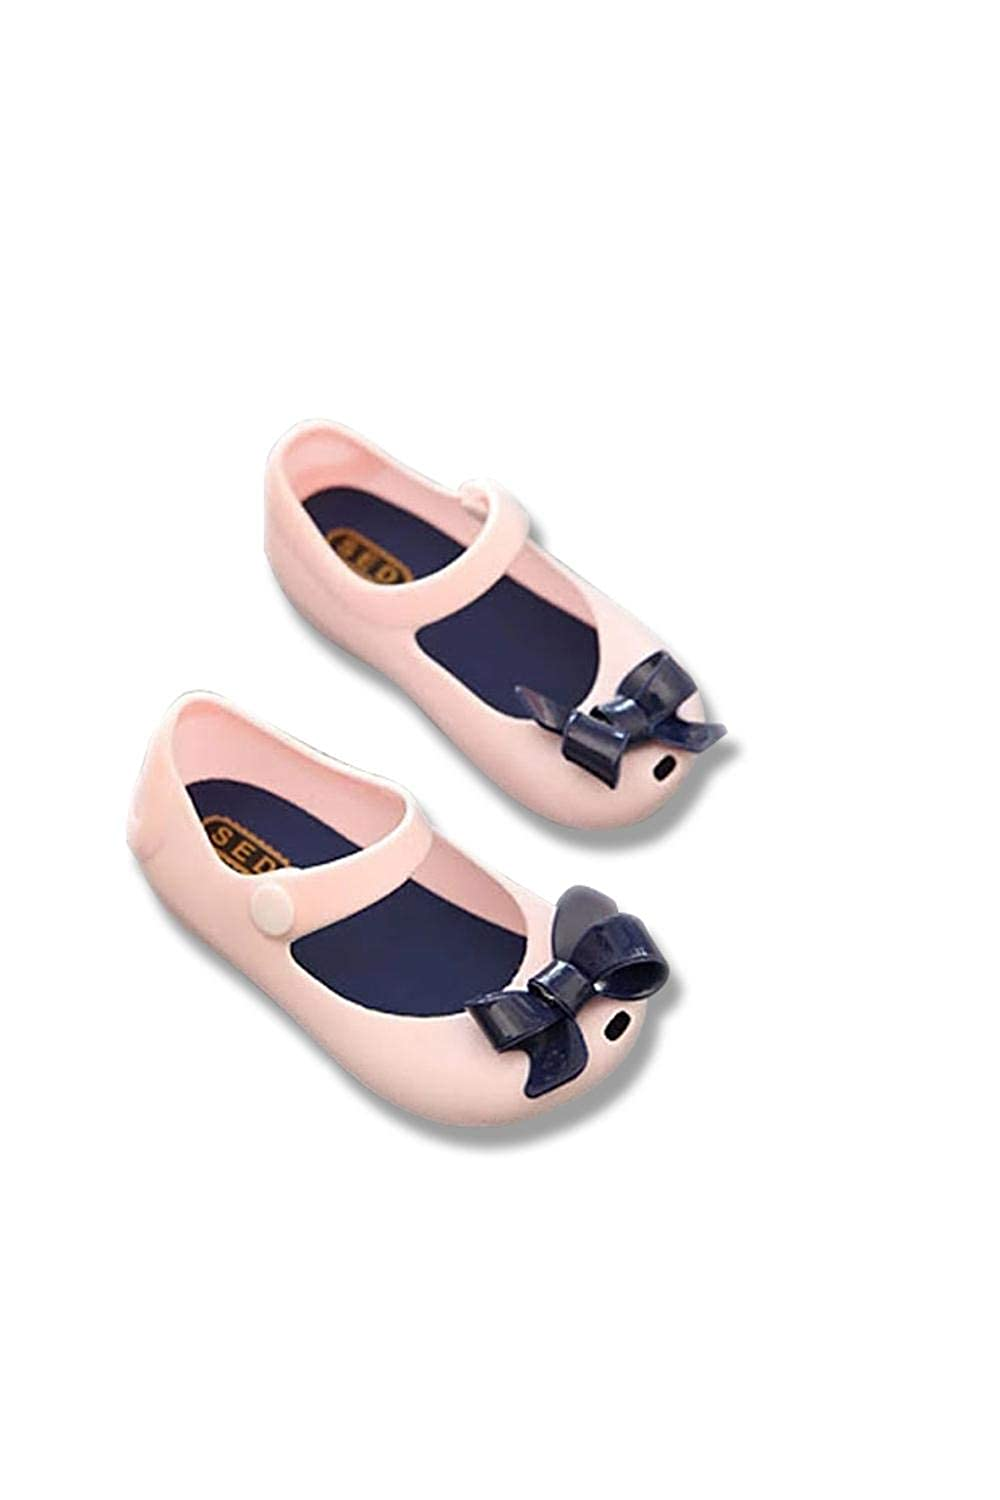 childrens size 9 shoes in eu